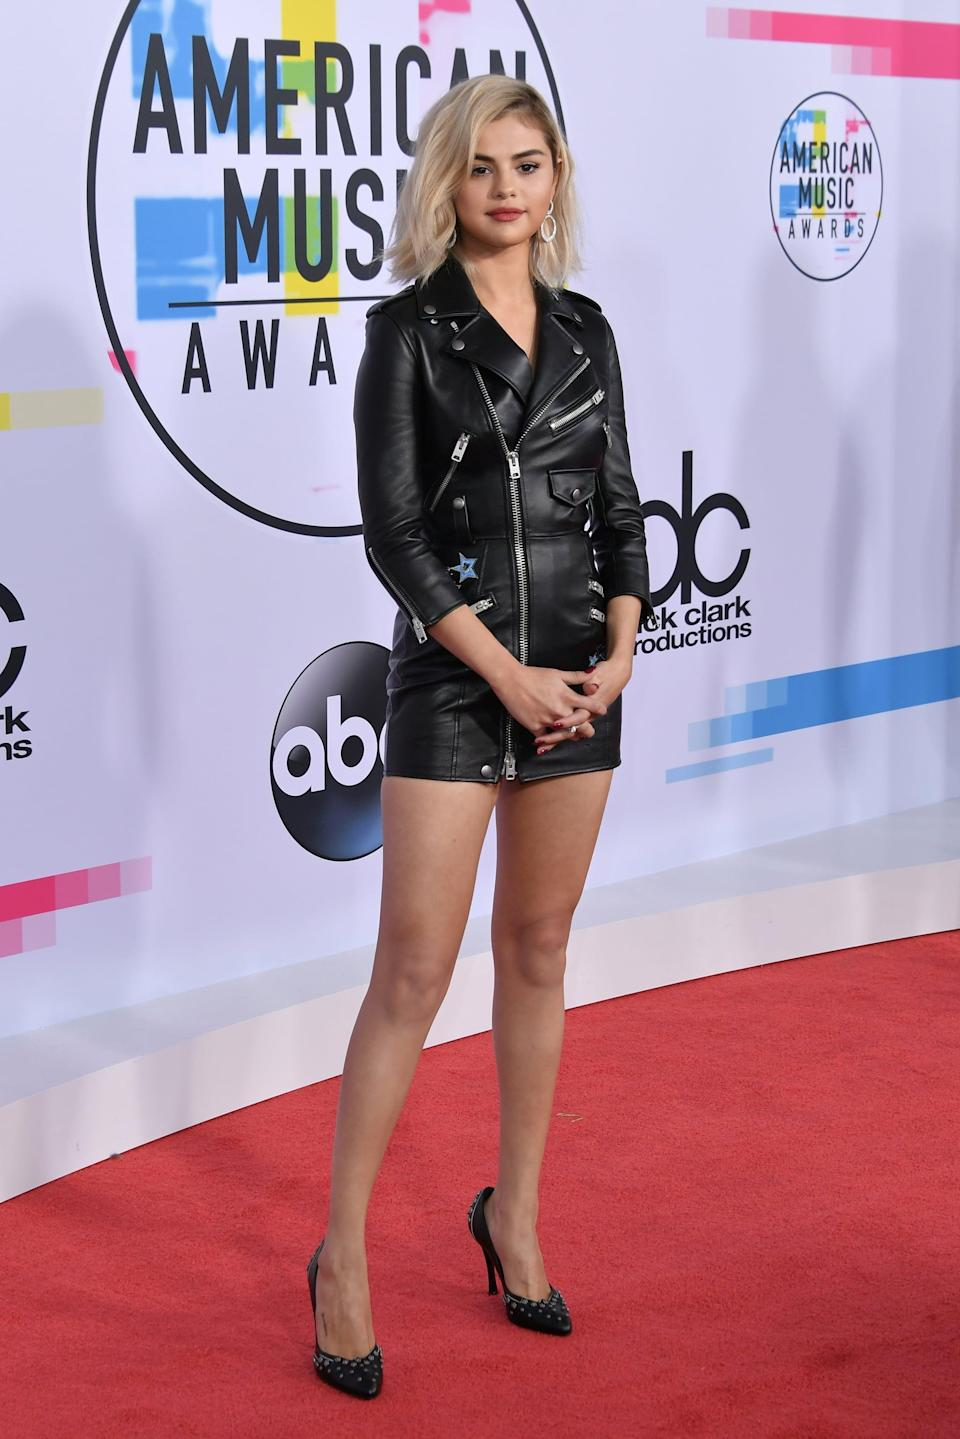 """<p>Yep, the black leather heels Selena wore with <a href=""""https://www.popsugar.com/fashion/Selena-Gomez-Coach-Dress-American-Music-Awards-2017-44278054"""" class=""""link rapid-noclick-resp"""" rel=""""nofollow noopener"""" target=""""_blank"""" data-ylk=""""slk:her moto-effect Coach dress"""">her moto-effect Coach dress</a> at the 2017 American Music Awards in LA were complete with miniature flower studs. You've got to zoom in to get a good look at these puppies, which are also by Coach.</p>"""